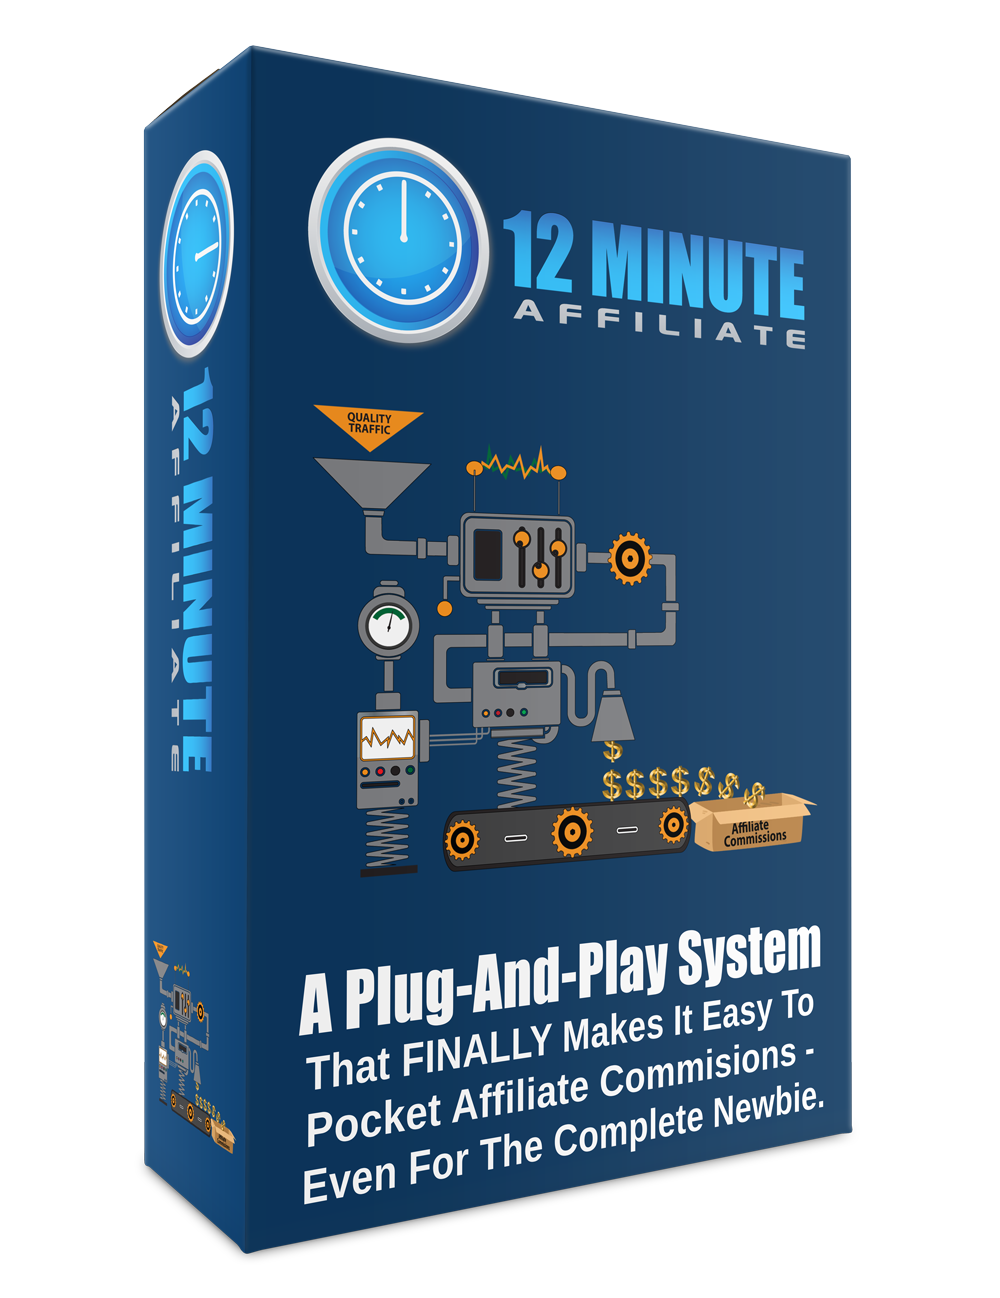 Make automated affiliate income with just 12 minutes per day